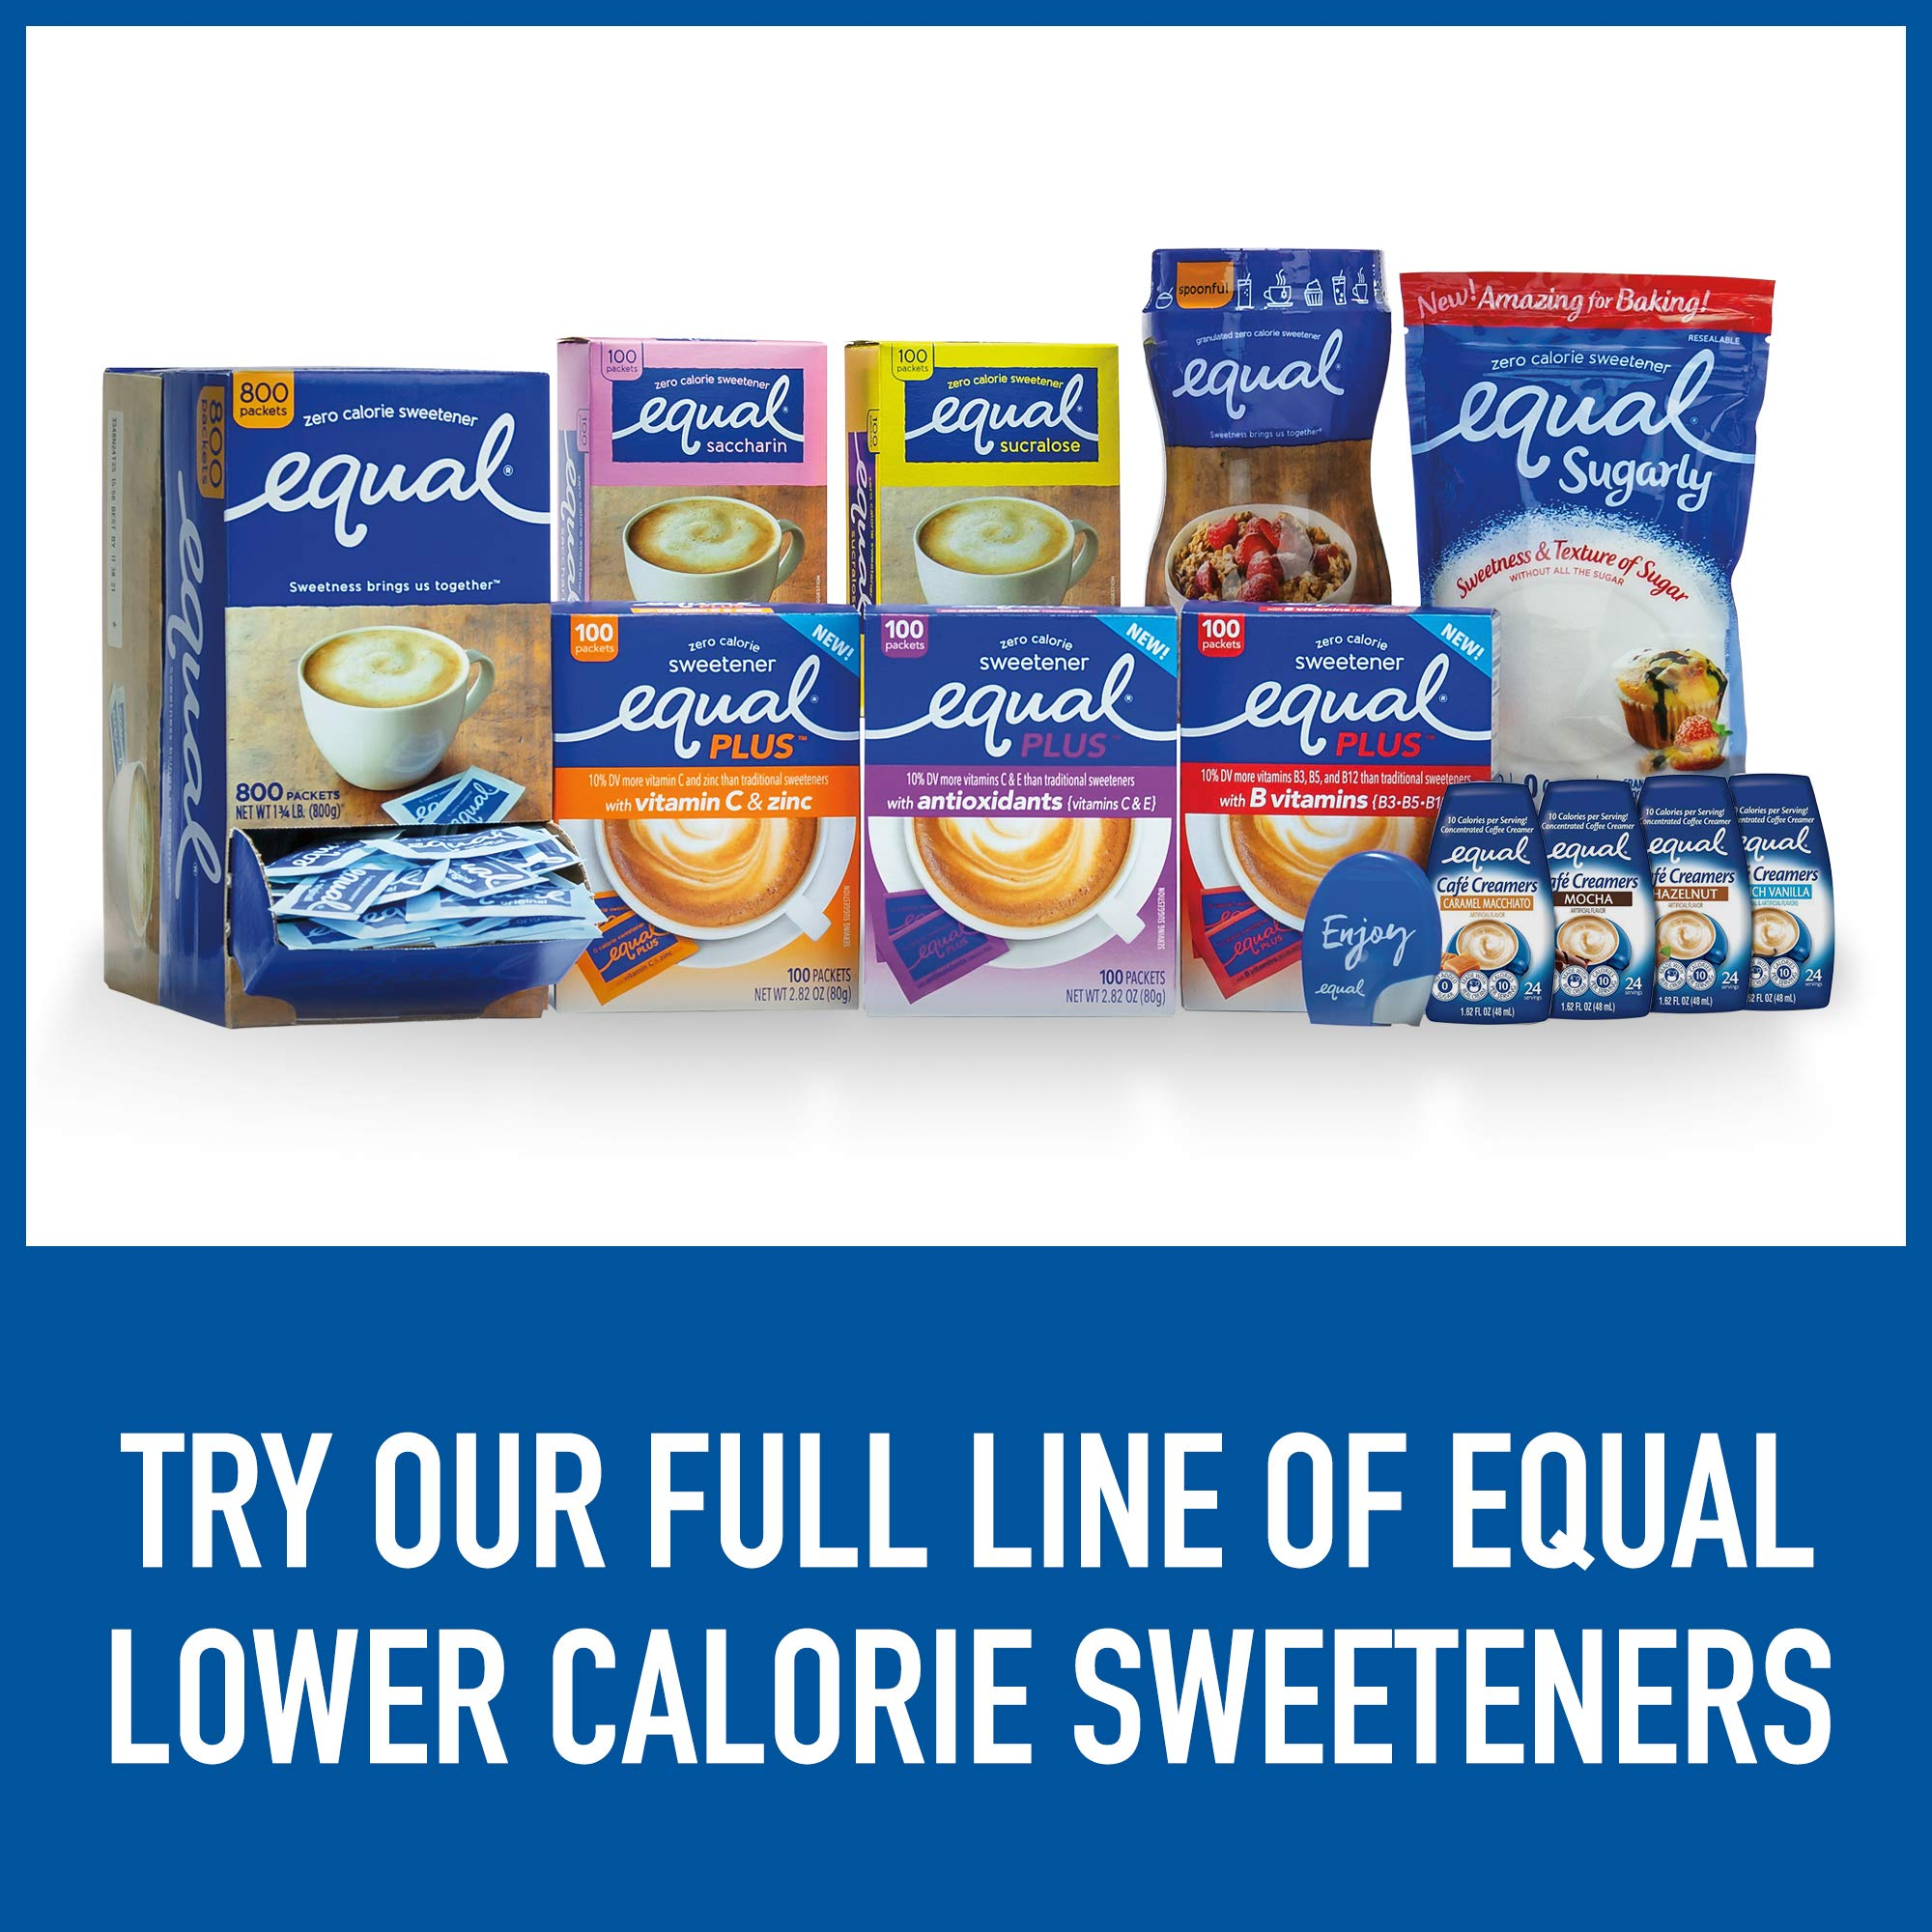 EQUAL 0 Calorie Sweetener, Sugar Substitute, Zero Calorie Sugar Alternative Sweetener Packets, Sugar Alternative, 230 Count (Pack of 3) by Equal (Image #10)